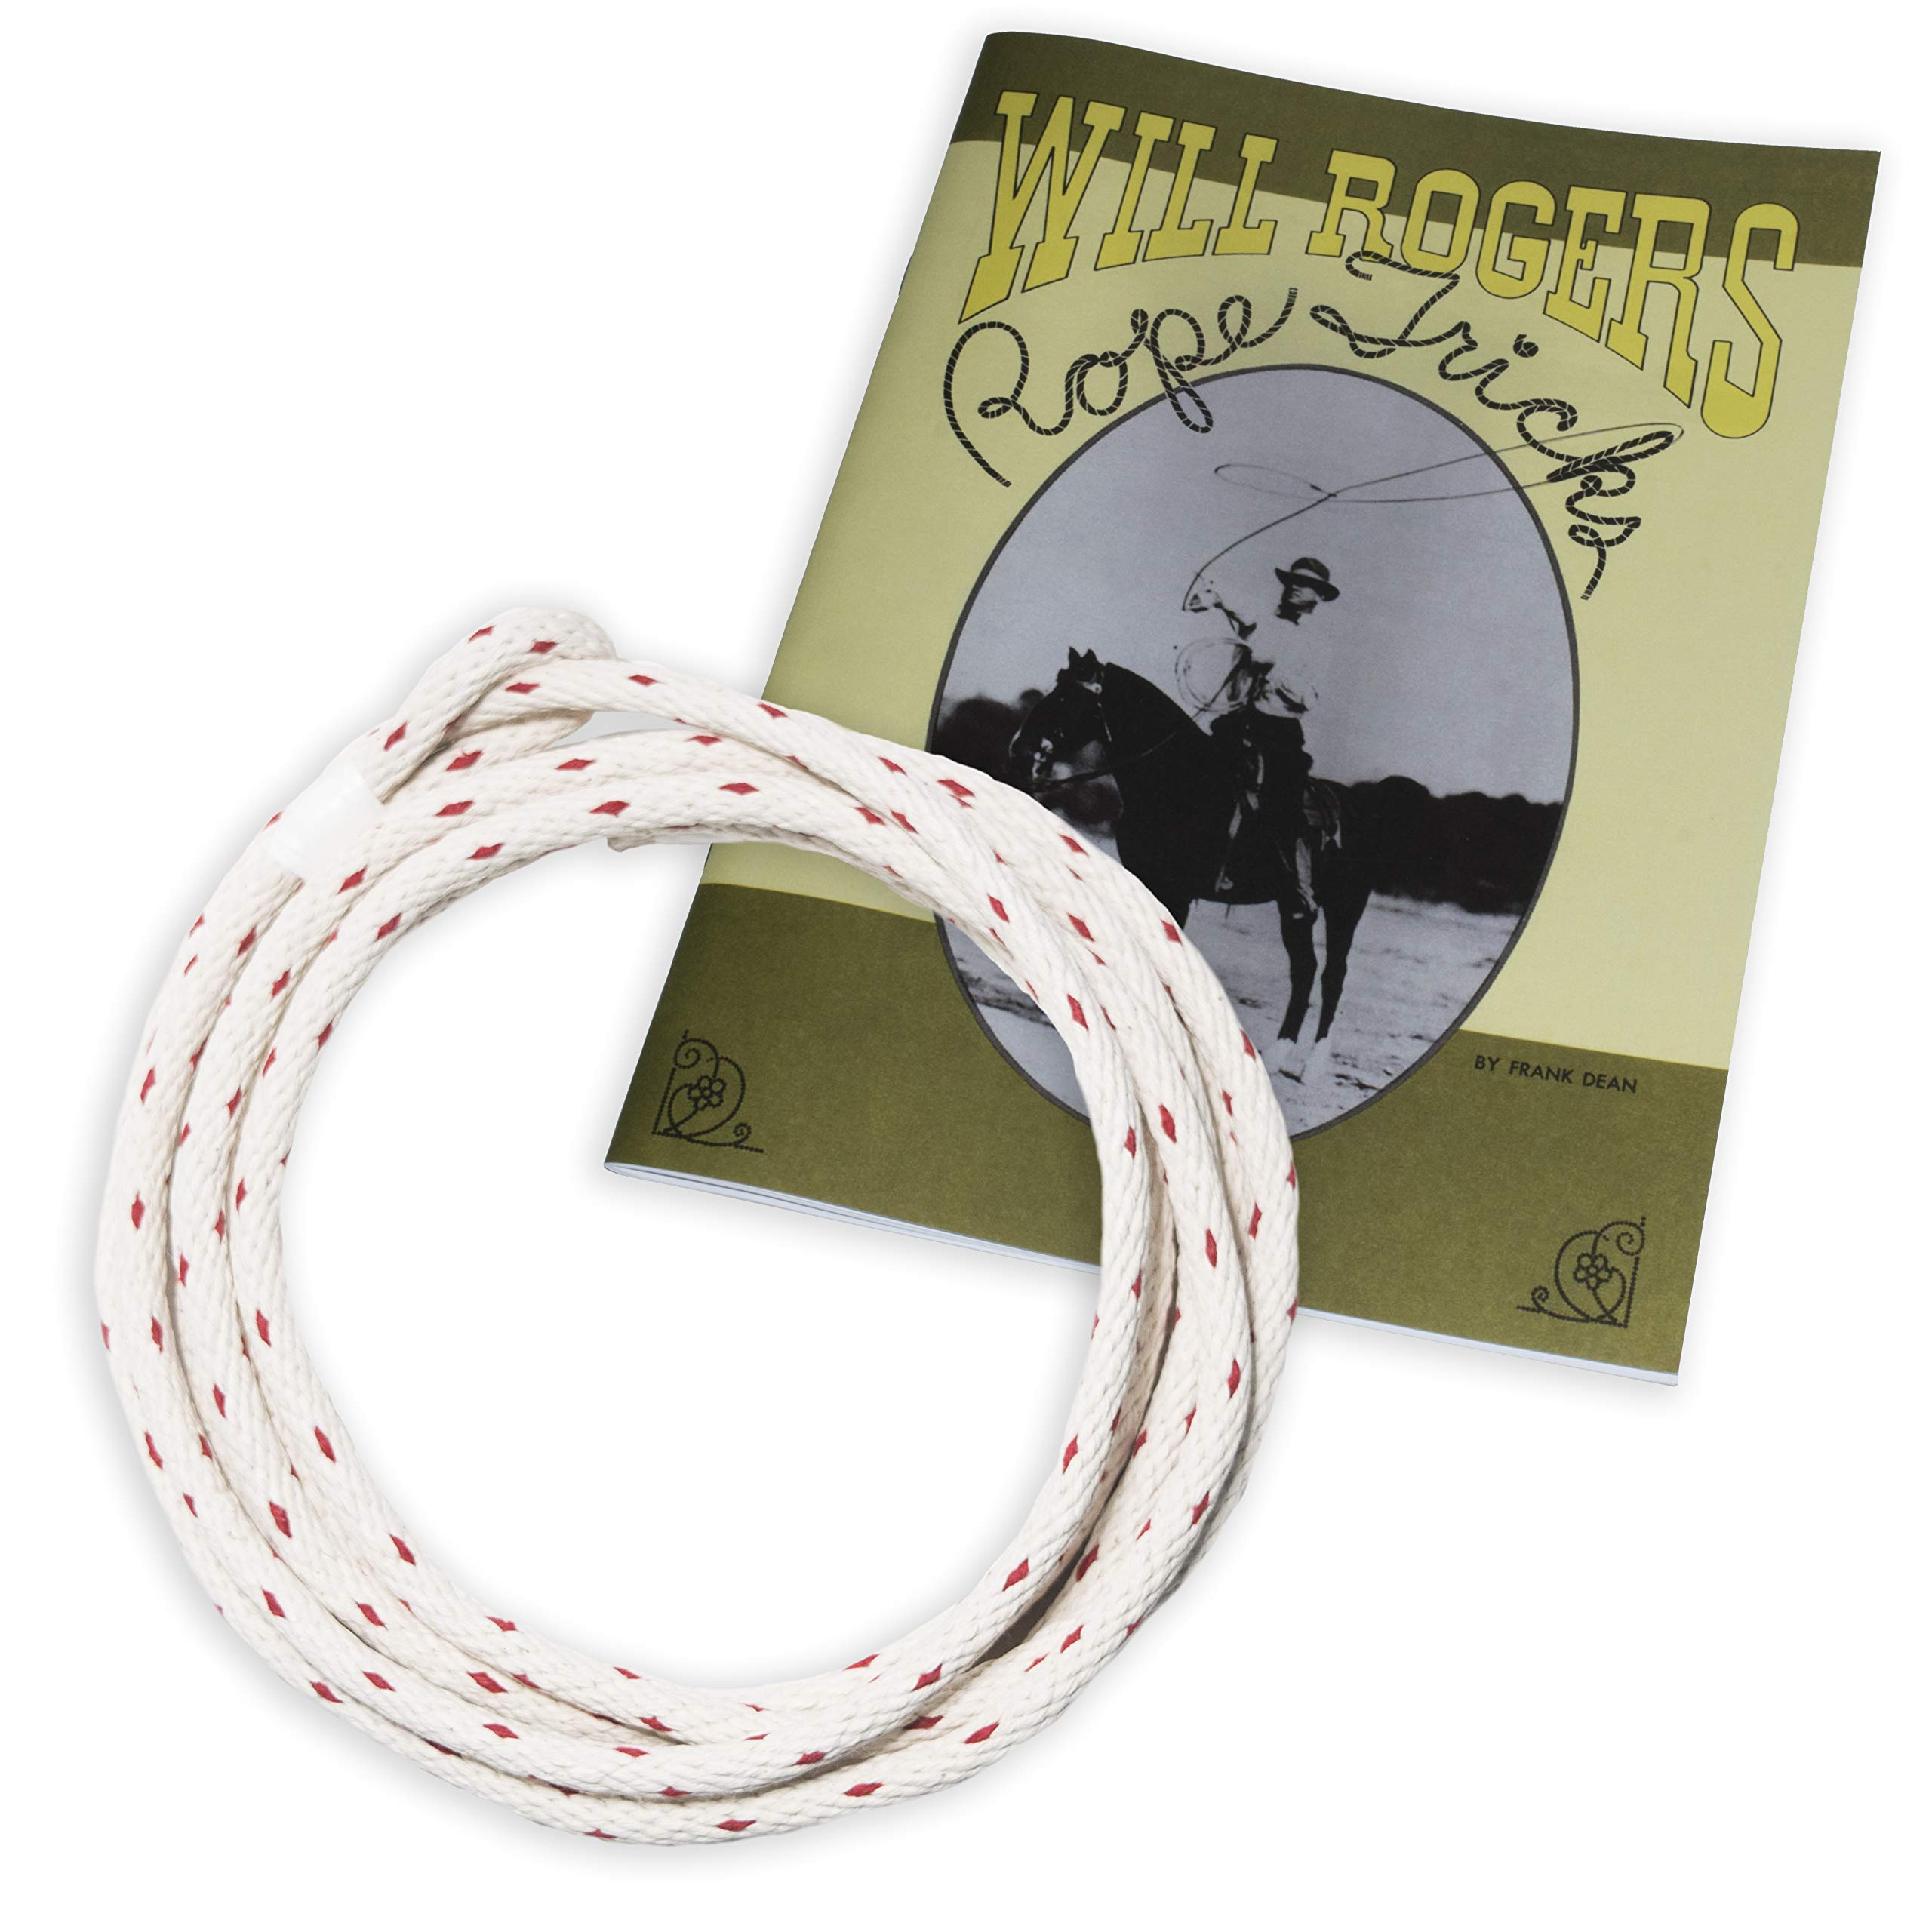 Western Stage Props Will Rogers Trick Roping Set (Rope+Book Combo Set)